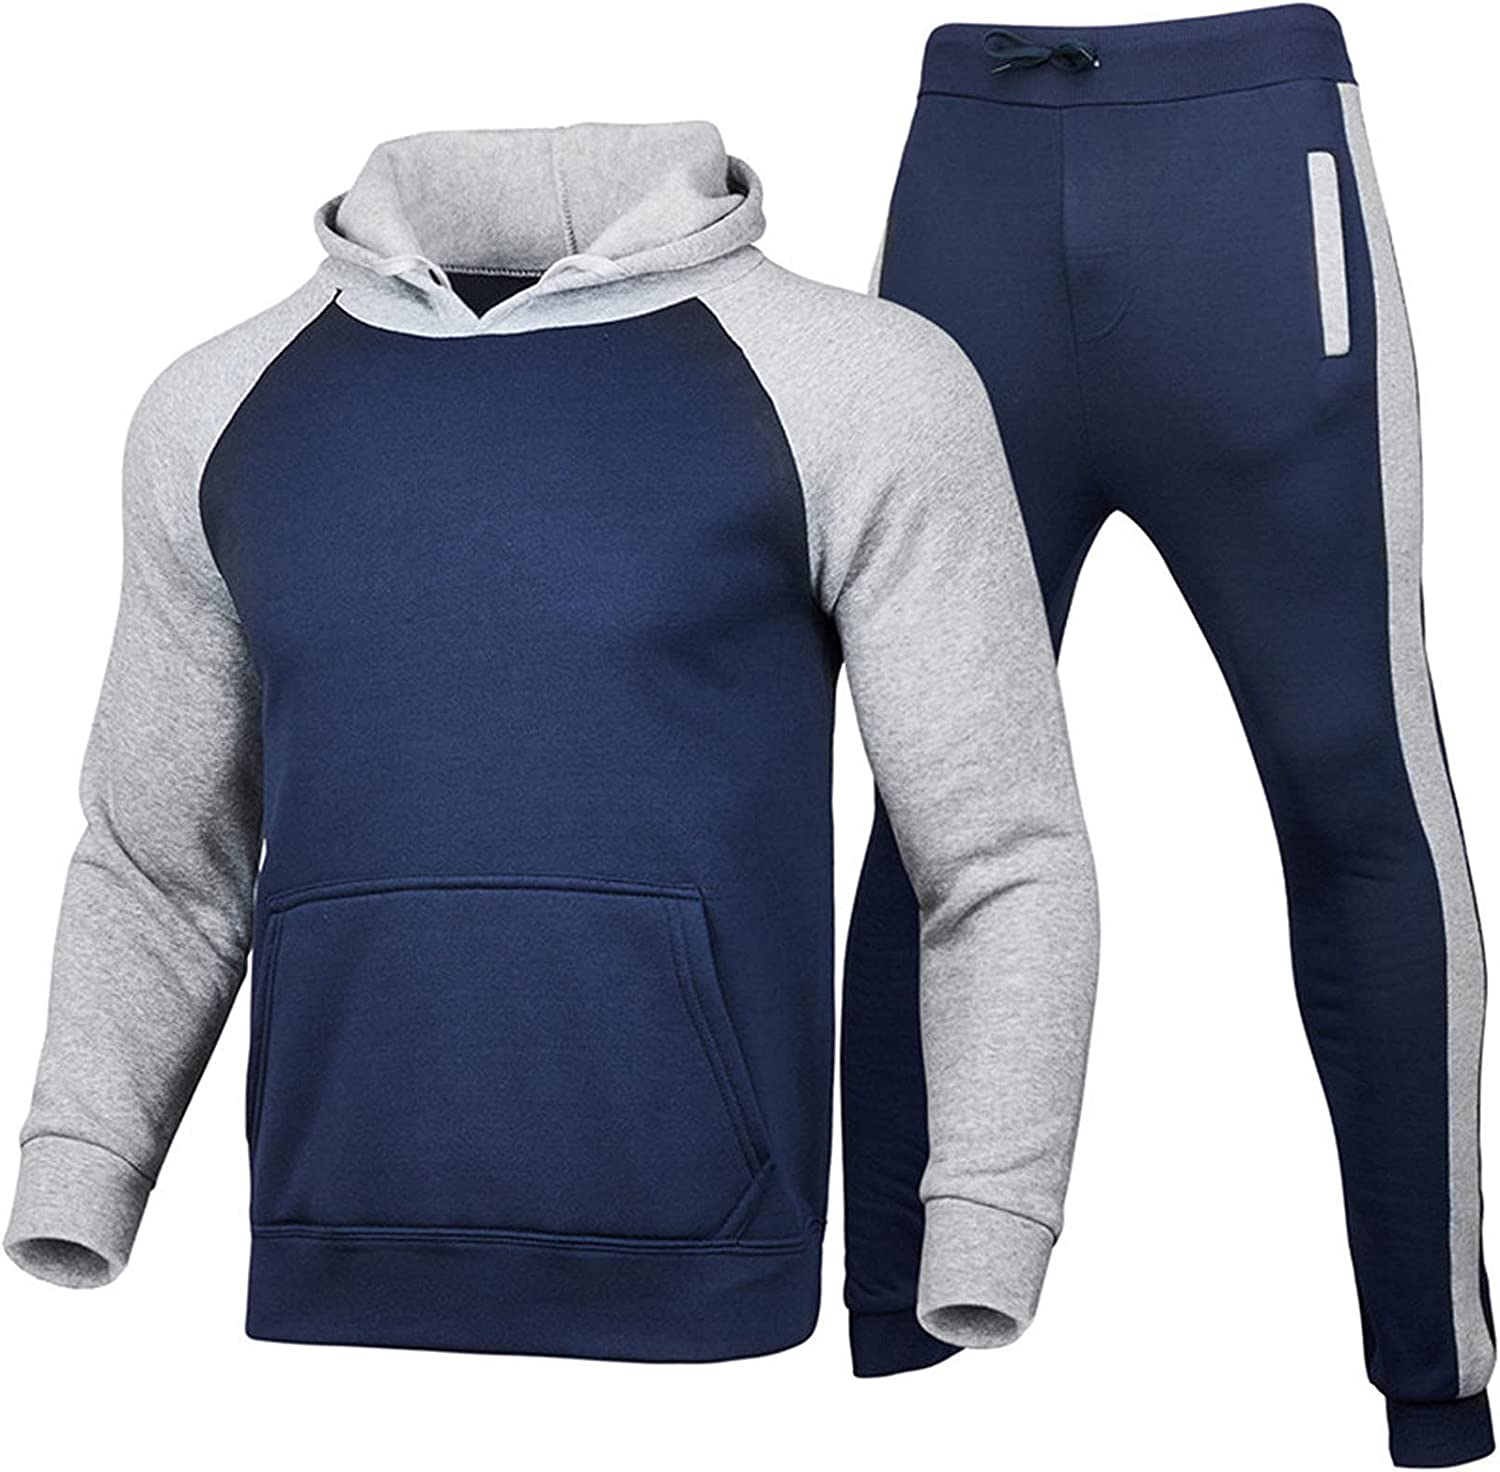 YingeFun 2 Be super welcome Piece Outfits for Raglan Sweatshirts Suit Very popular Sports Men